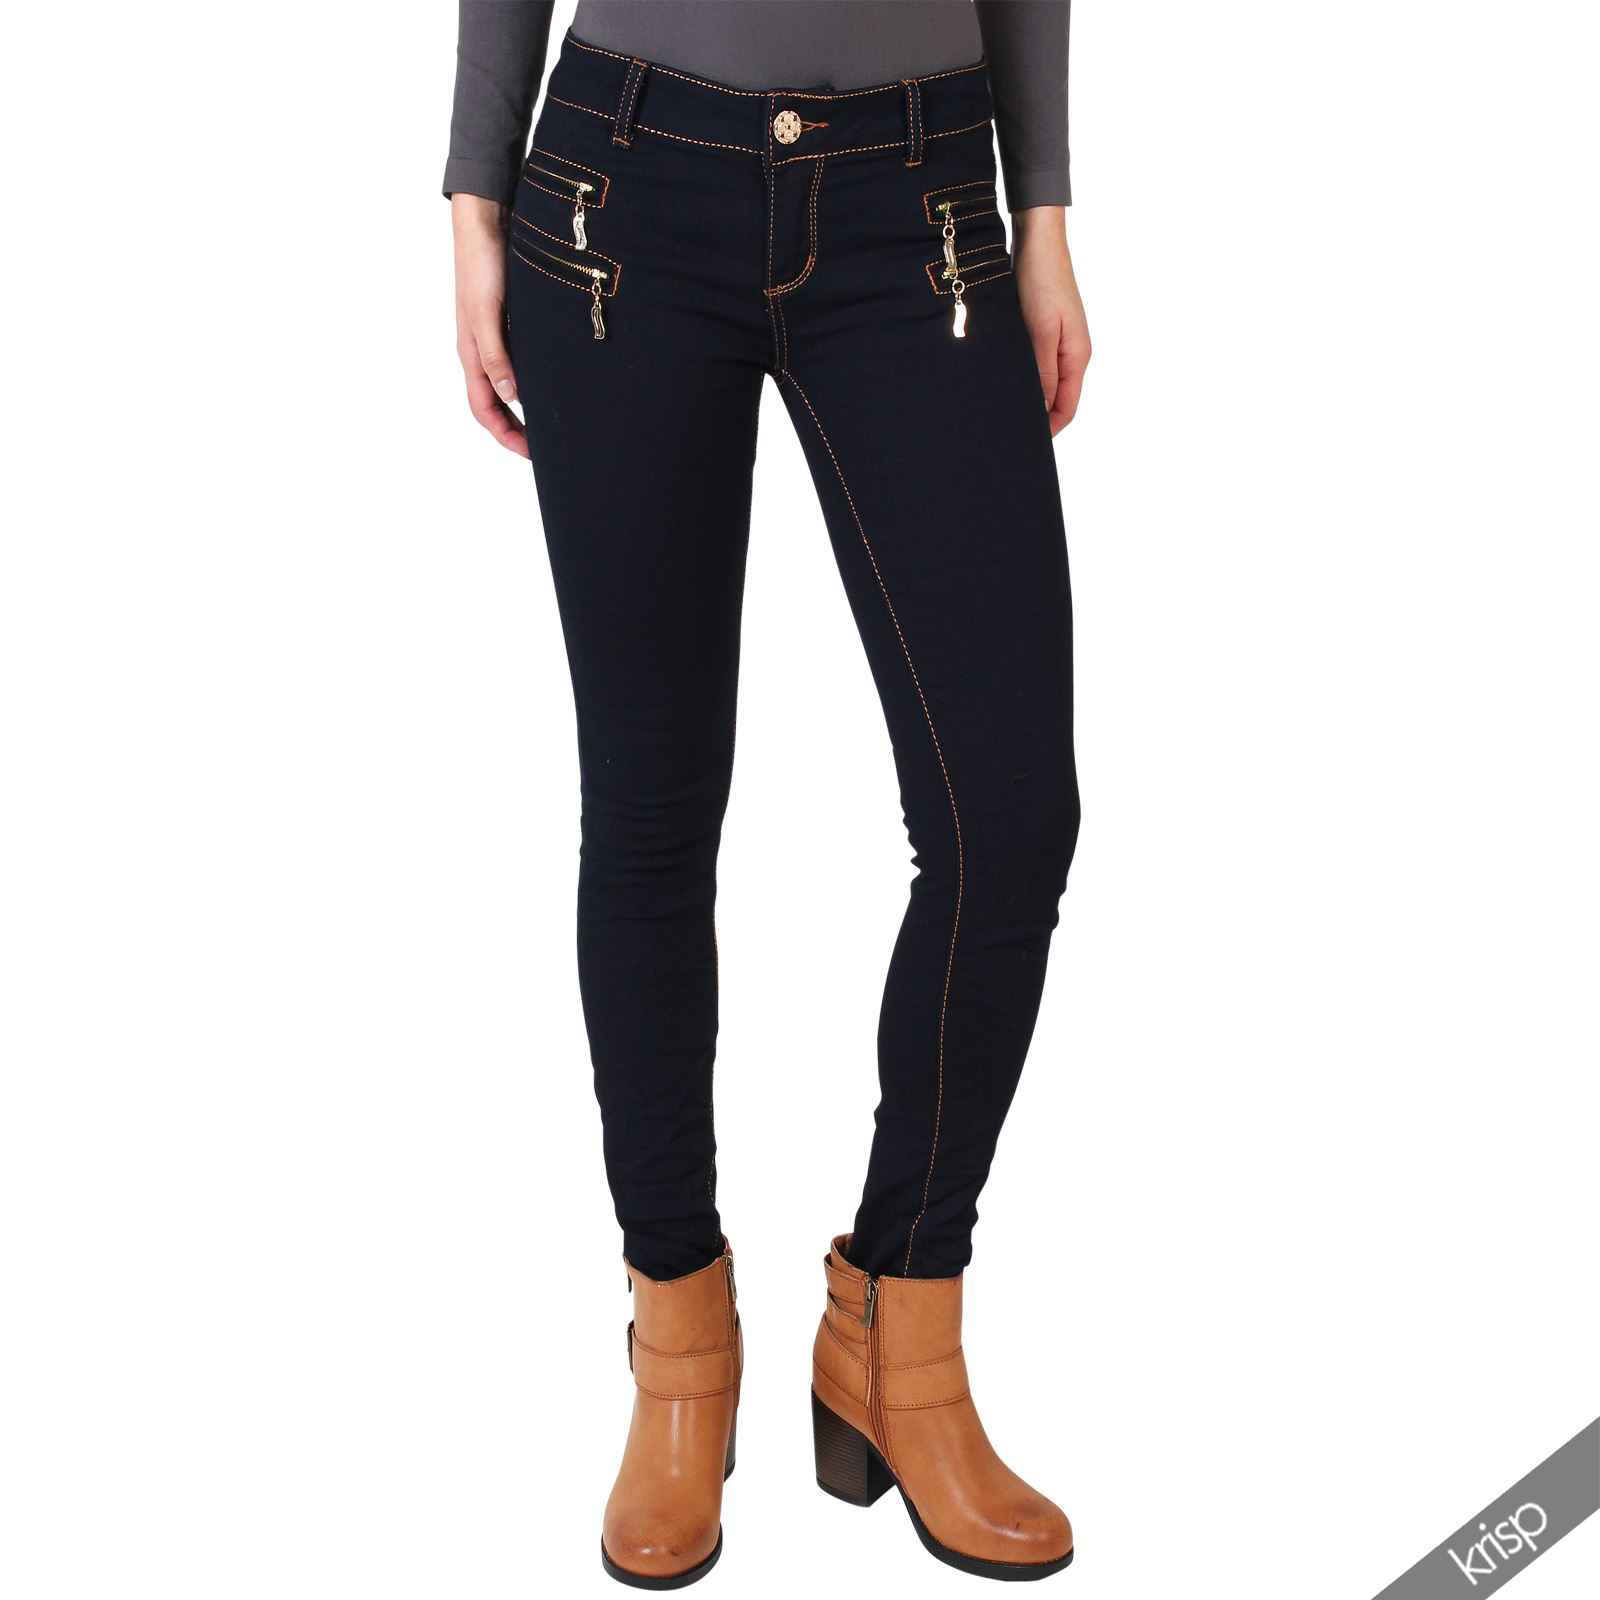 Luxury Clothing Shoes Amp Accessories Gt Women39s Clothing Gt Pants